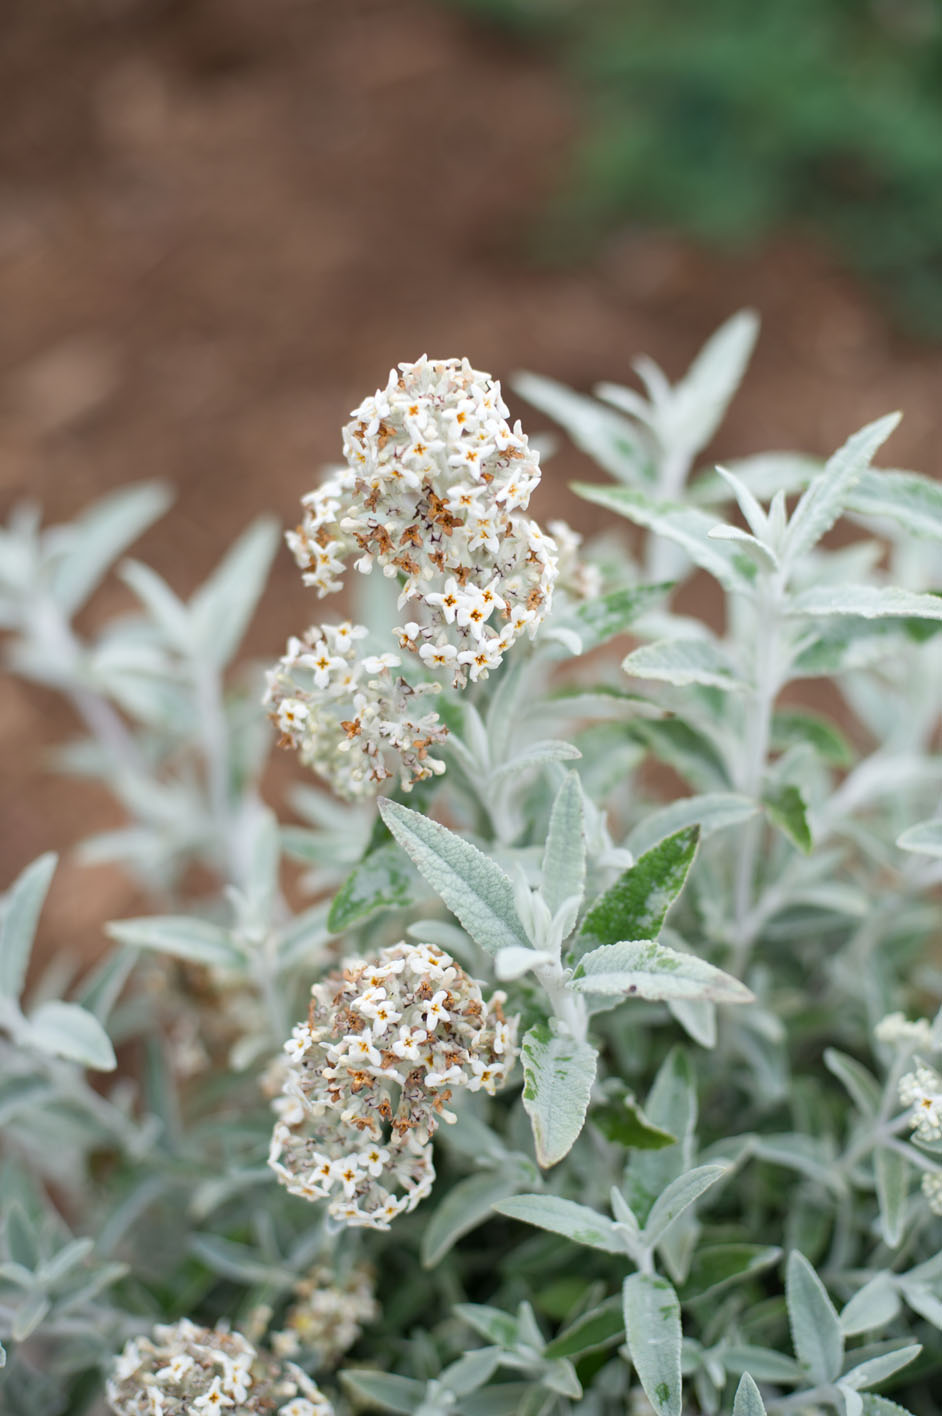 Butterfly Bush Silver Anniversary For Sale In Boulder Colorado